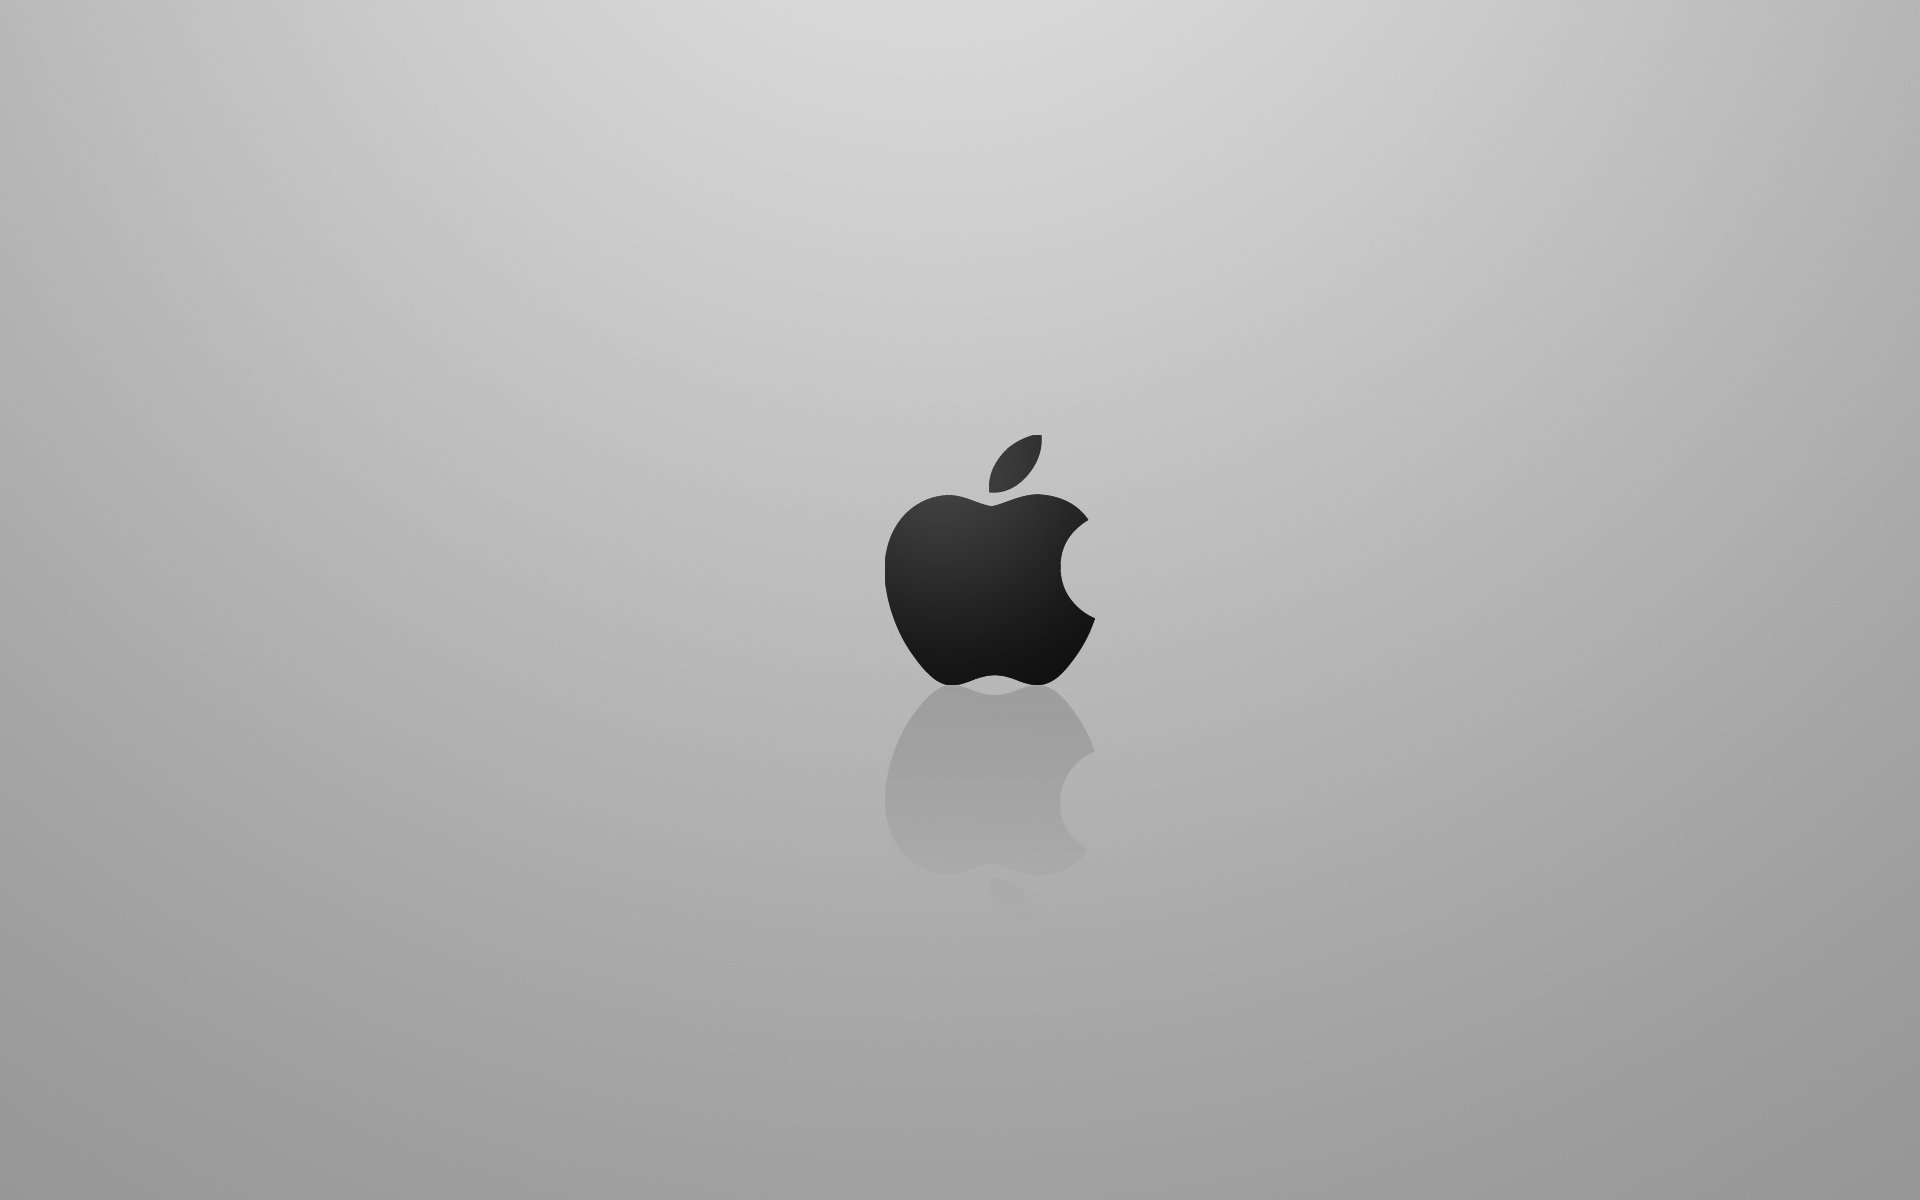 mac wallpapers 16 1920x1200